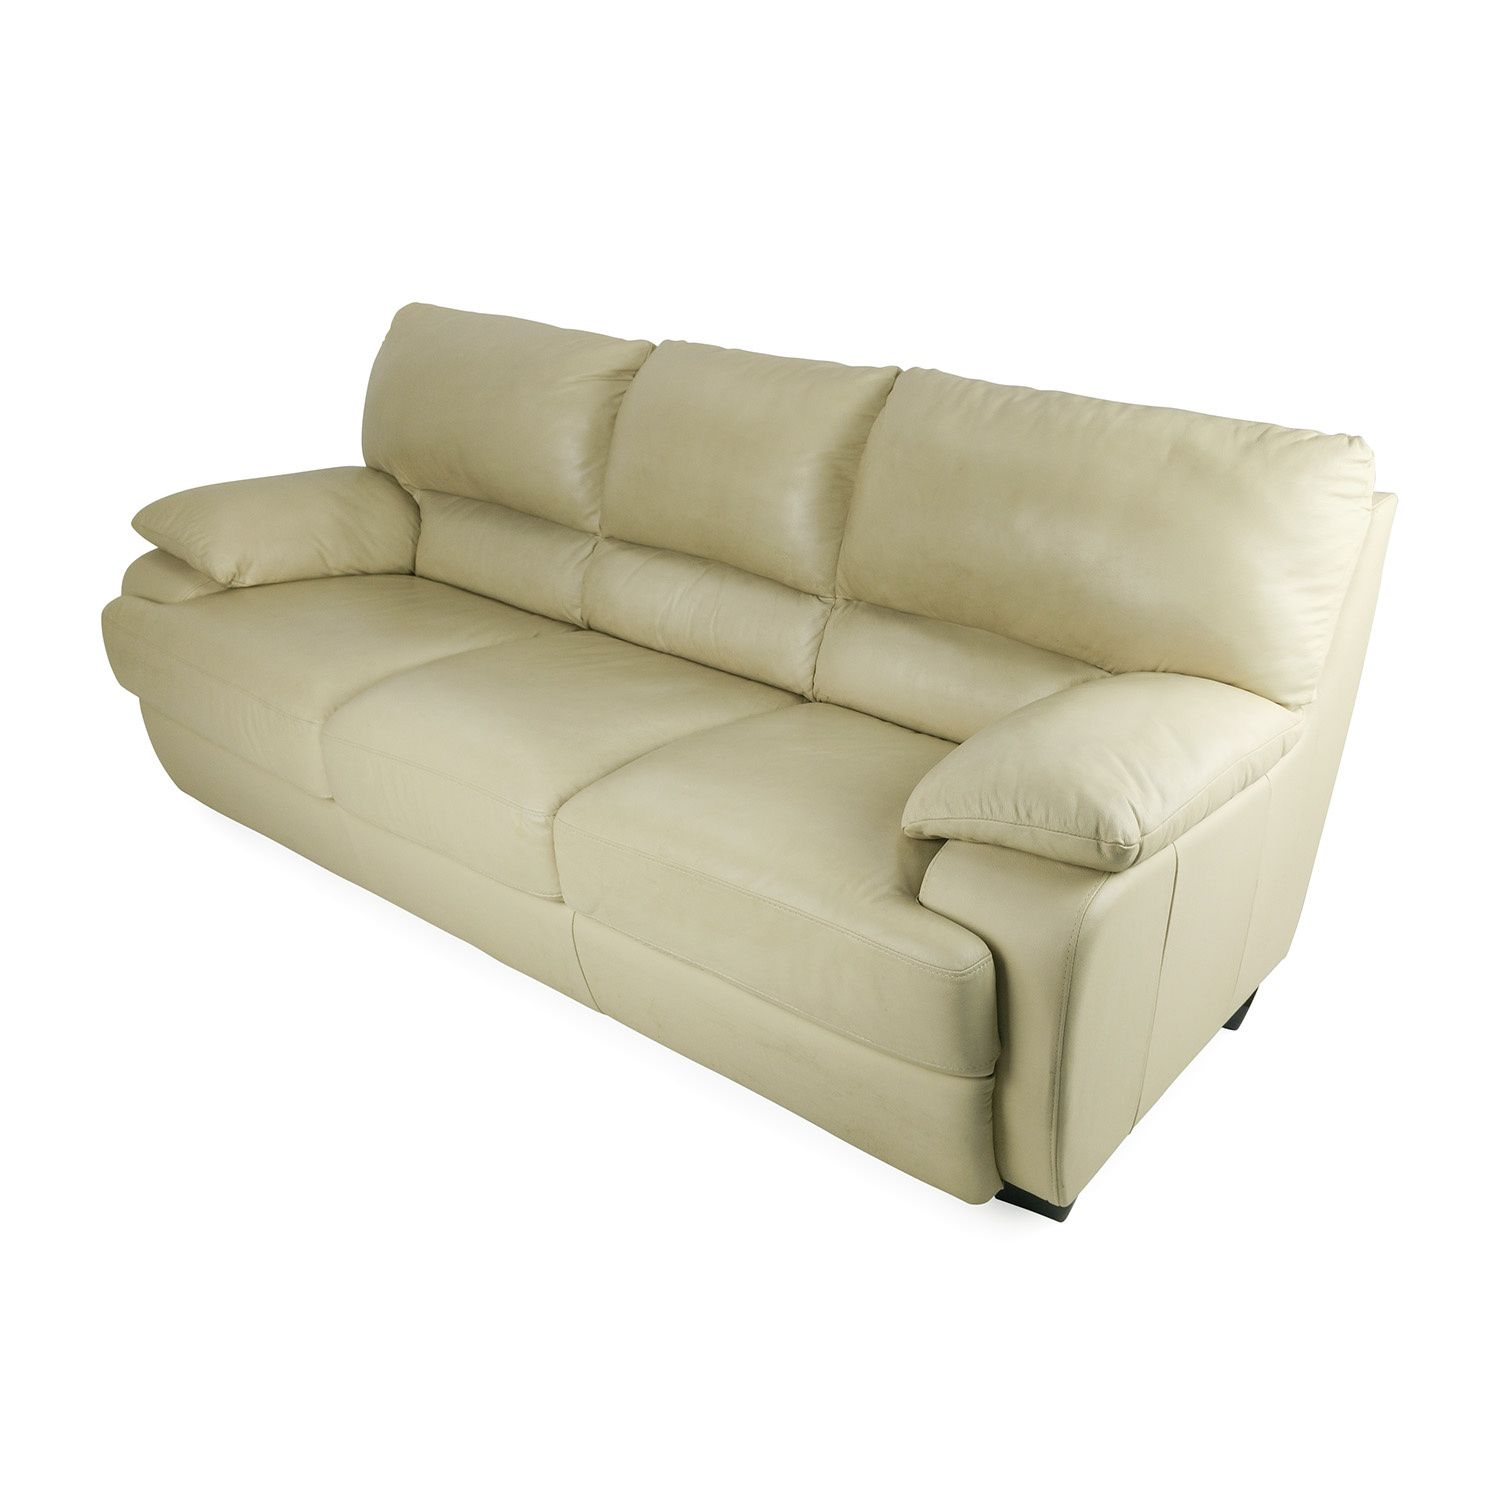 tan leather sofa and loveseat how to decorate your with a throw 75 off couch sofas